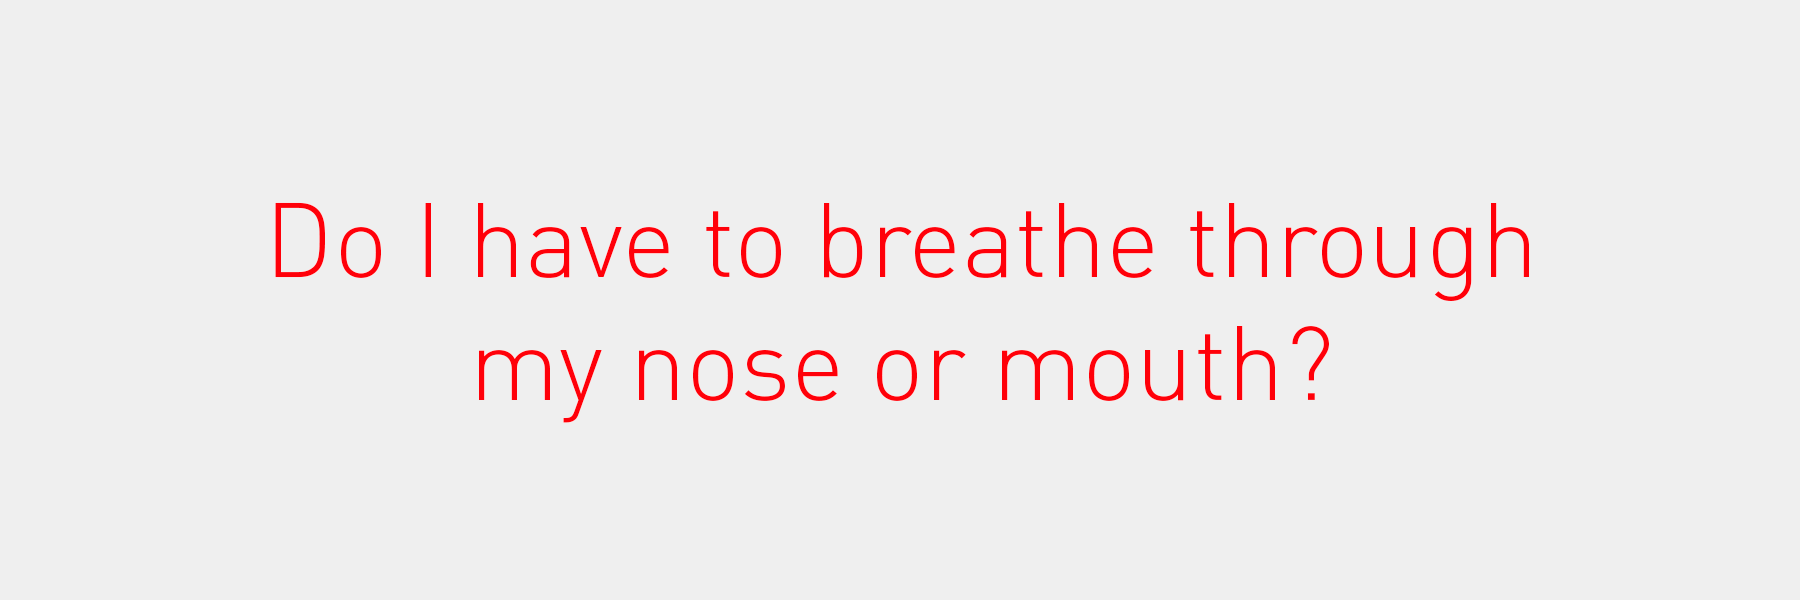 breathing through your nose or mouth during meditation